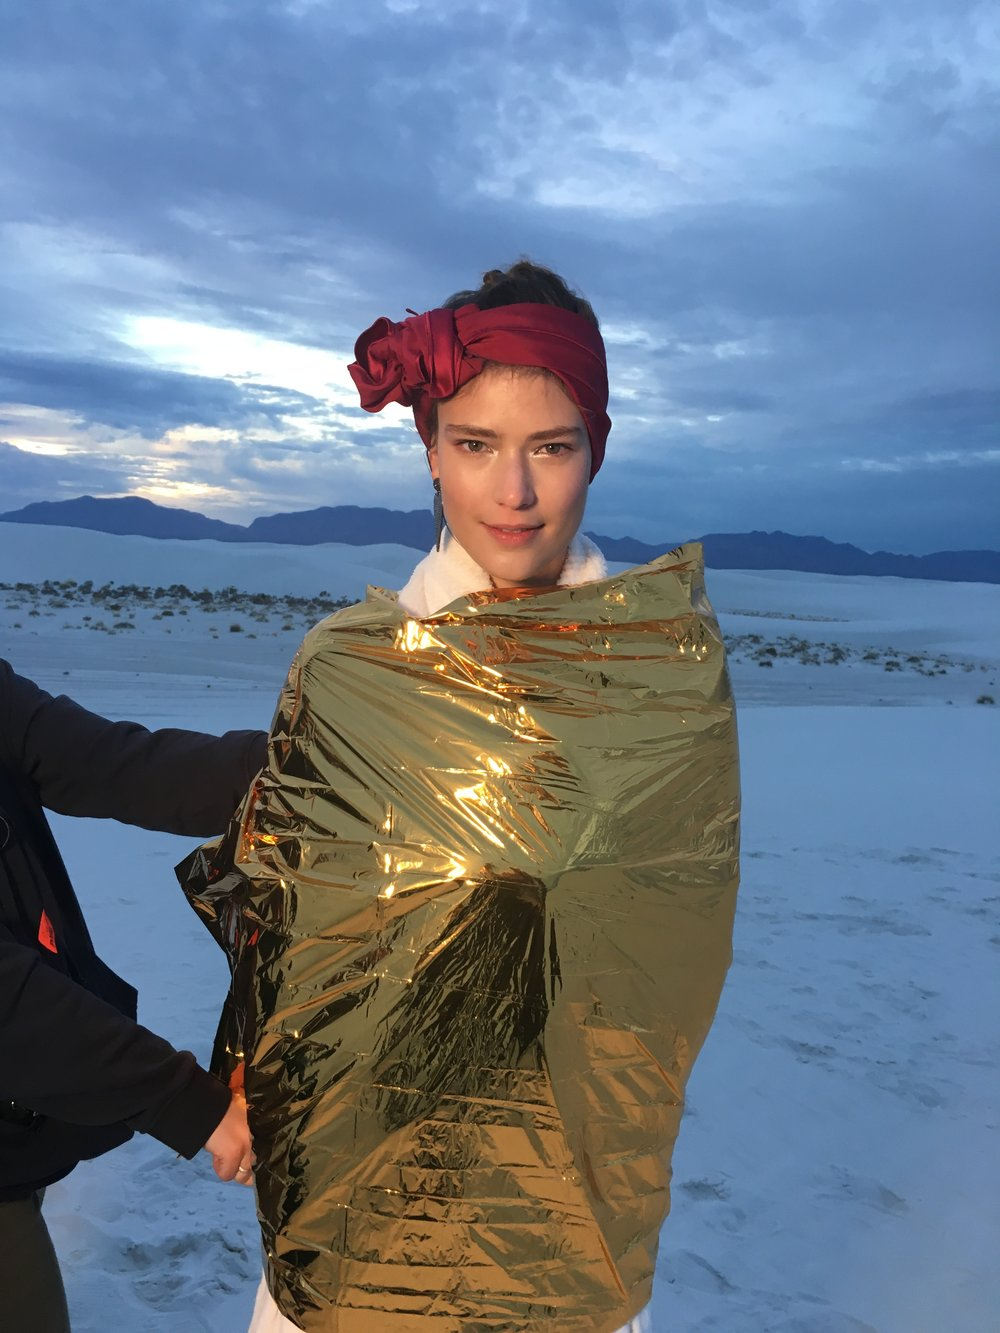 Staying warm in a thermal blanket after sunset when desert temperatures plummet